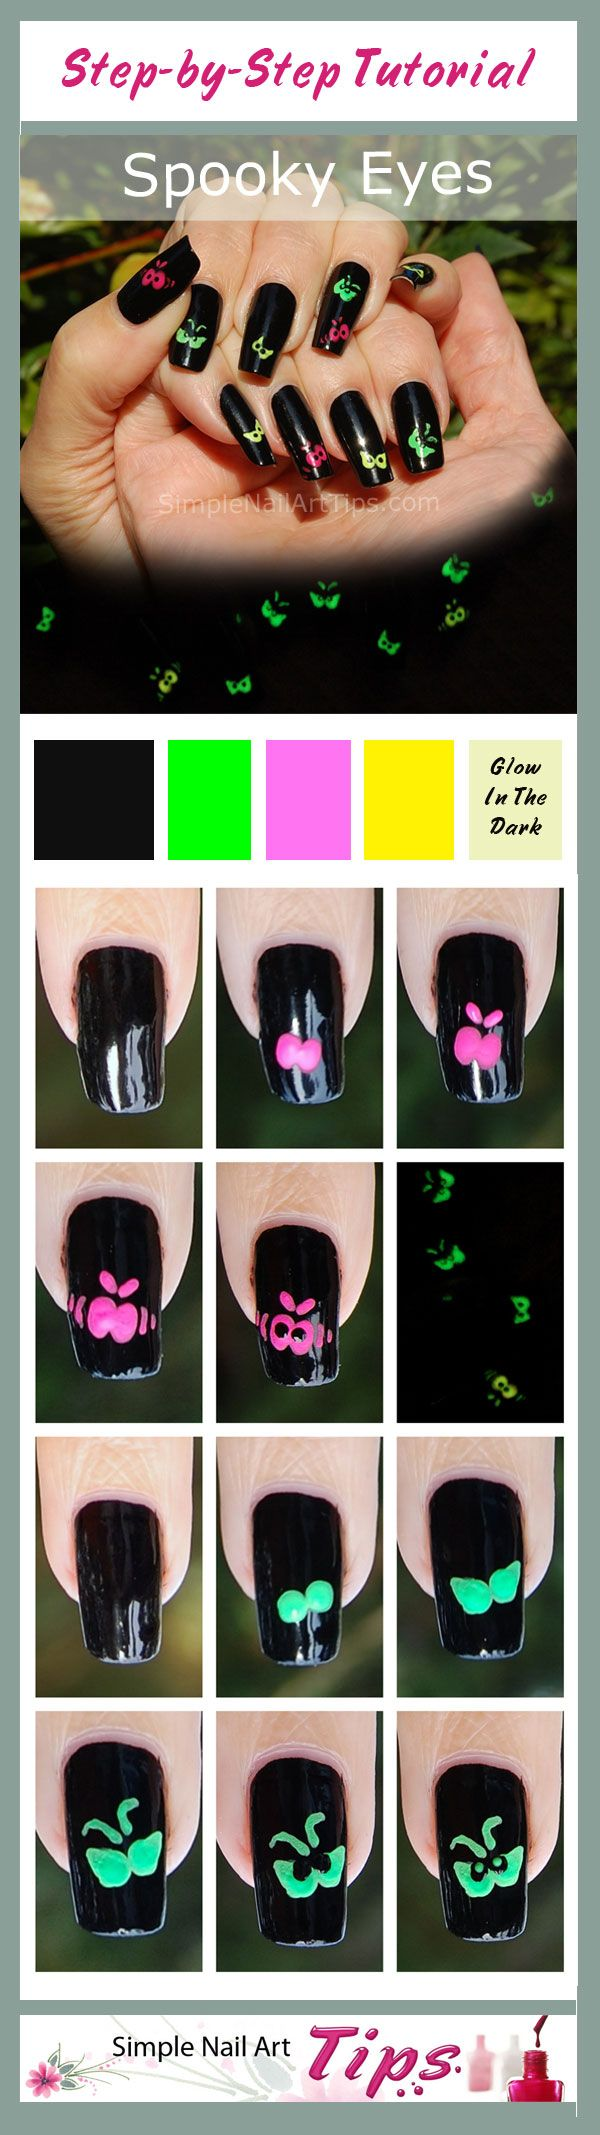 126 best * Halloween Nail Art Design Ideas images on Pinterest ...